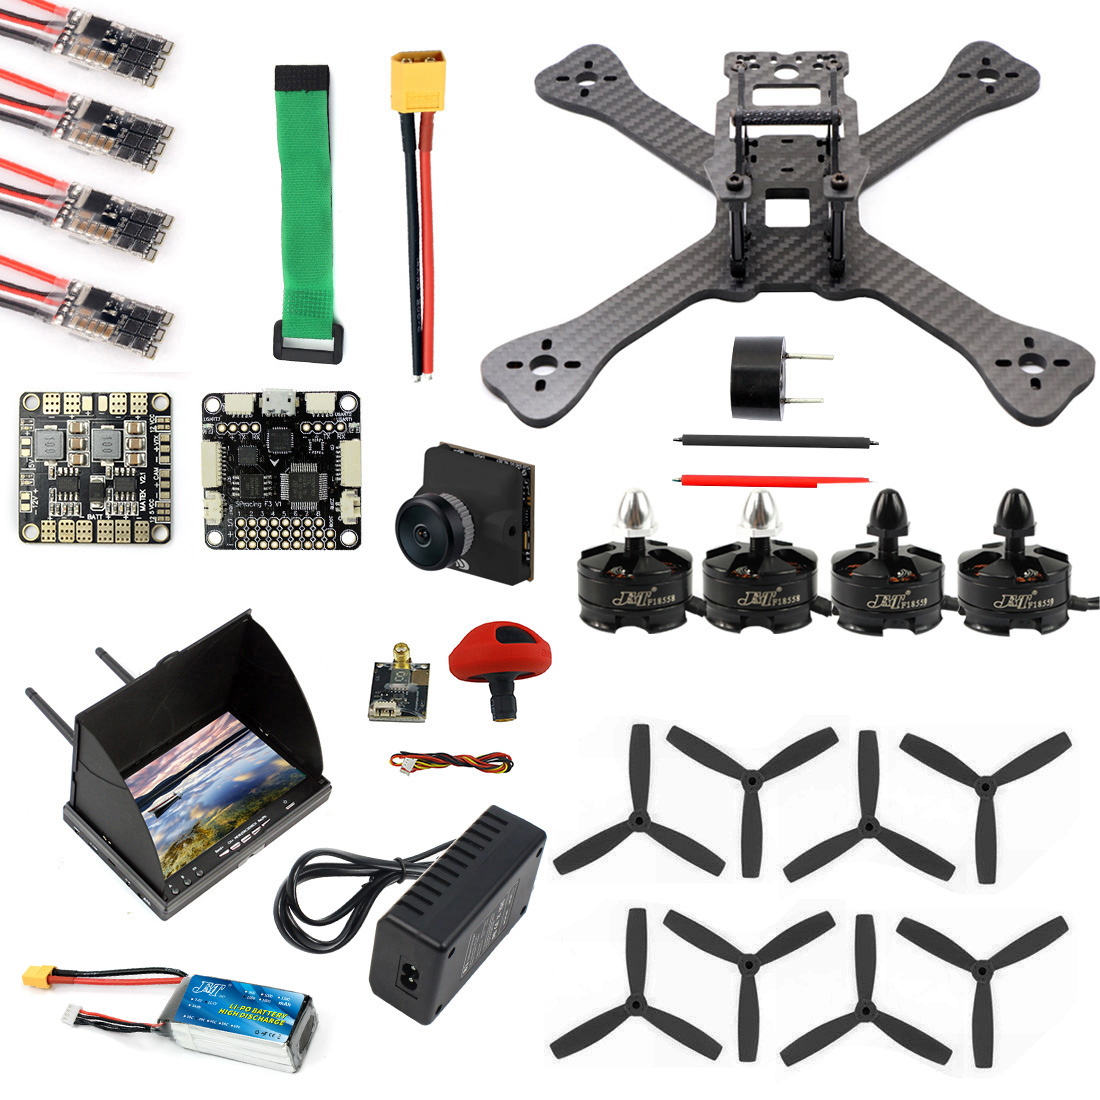 DIY TX5-210 210mm 2.4G RC Racing Drone Mini Quadcopter SP F3 Caddx Turbo S1 Night Version Camera 5.8G VTX FPV Monitor Goggles